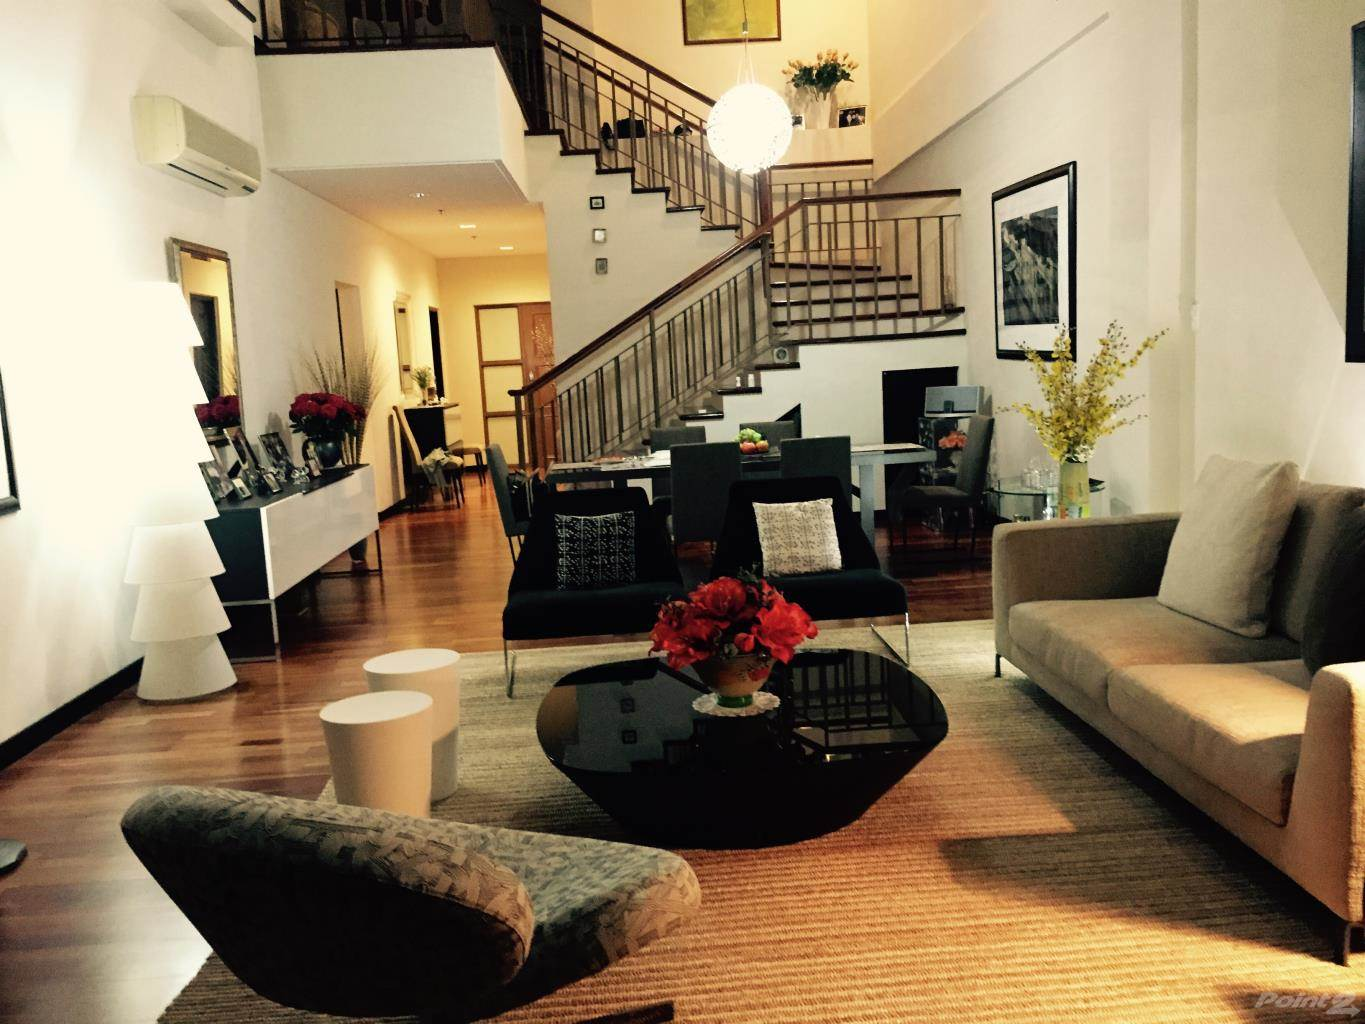 Residential For Sale in Woodridge Place at Tagaytay Highlands, Tagaytay, Cavite   , Philippines